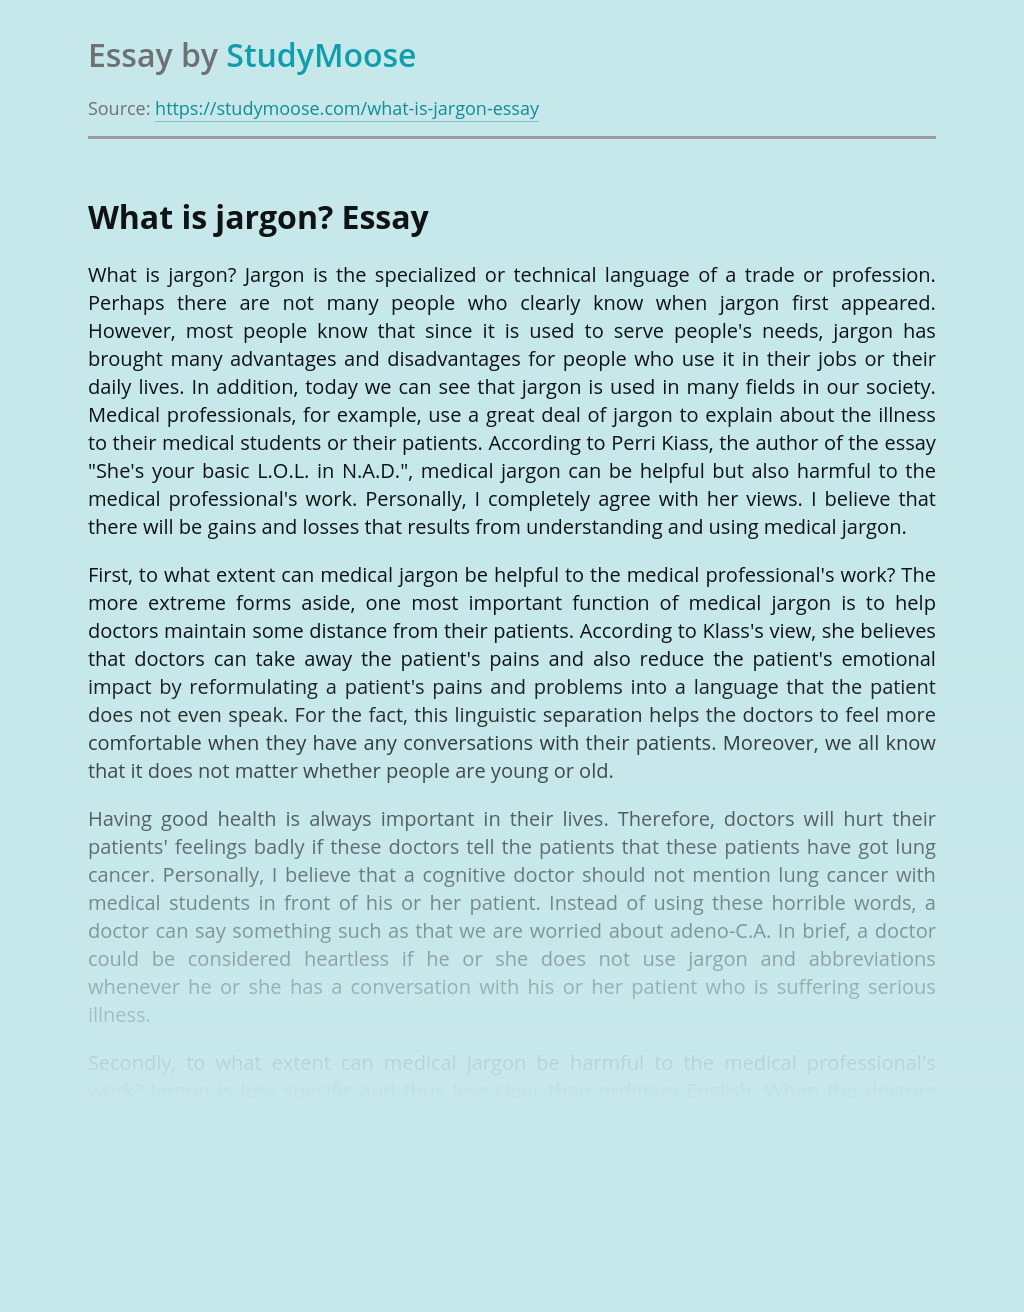 What Is Jargon?